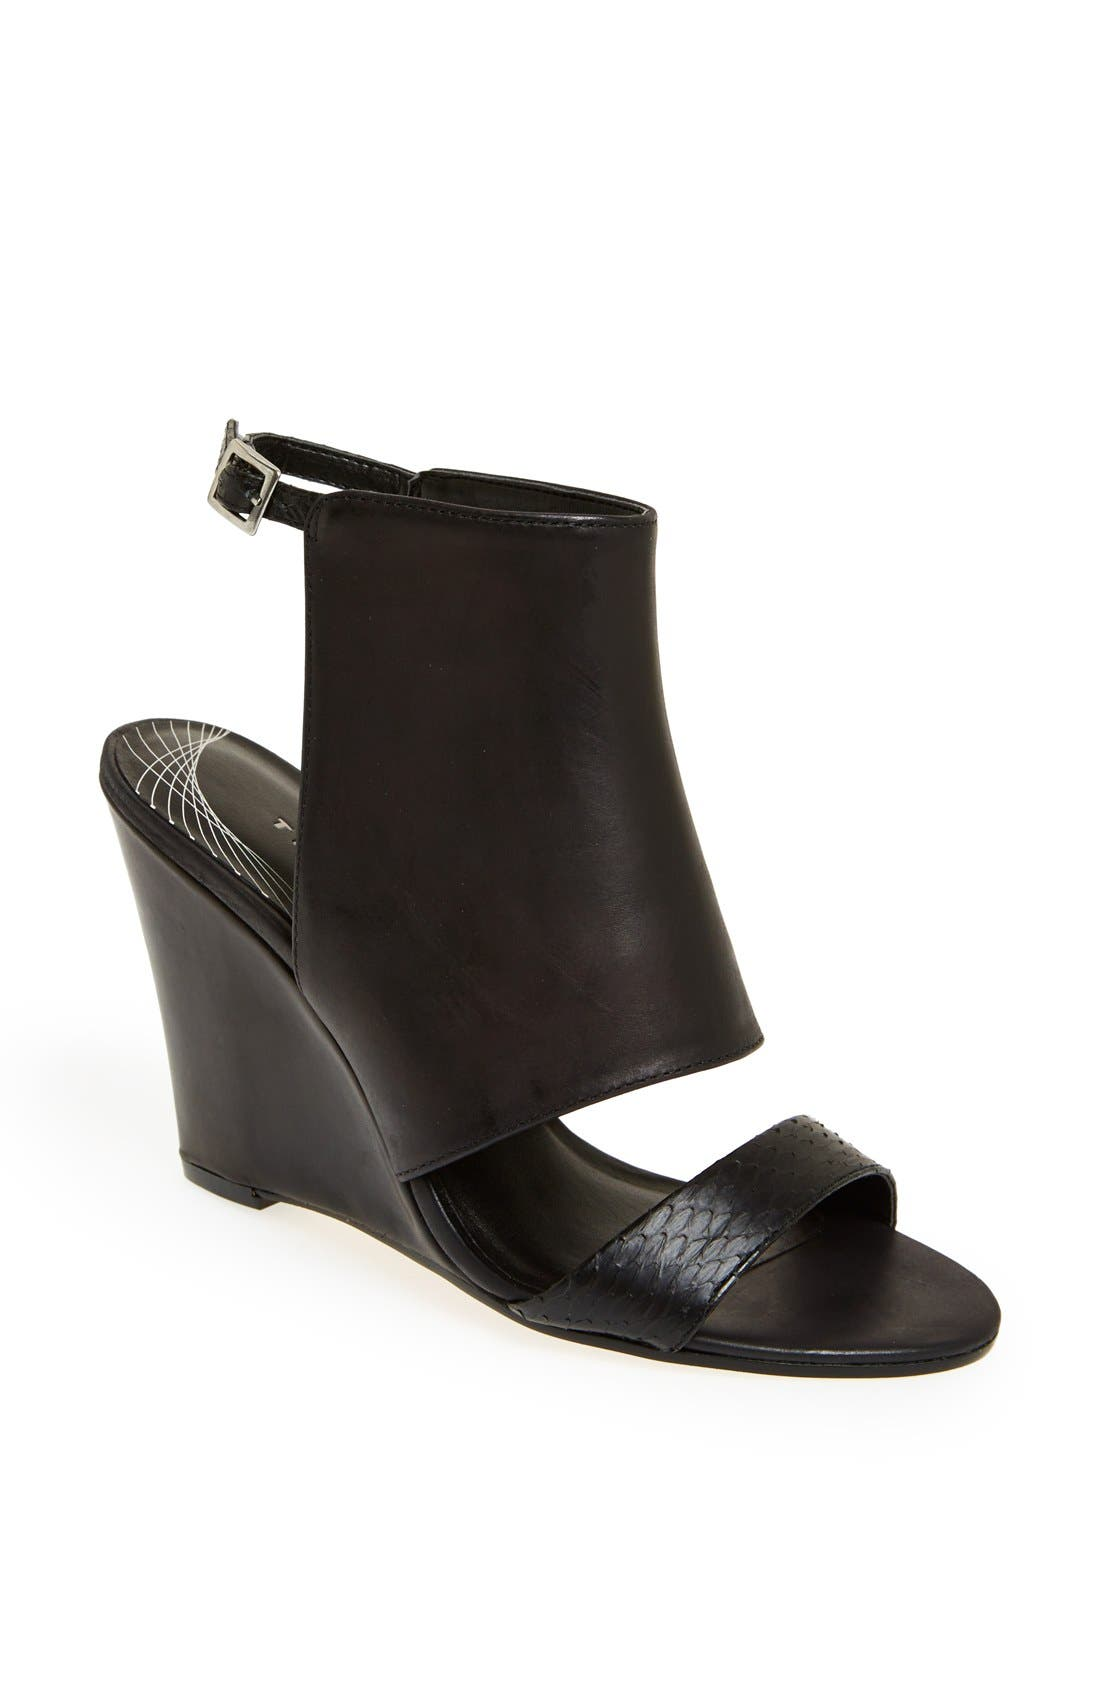 Alternate Image 1 Selected - Trouvé 'Raley' Cuff Wedge Sandal